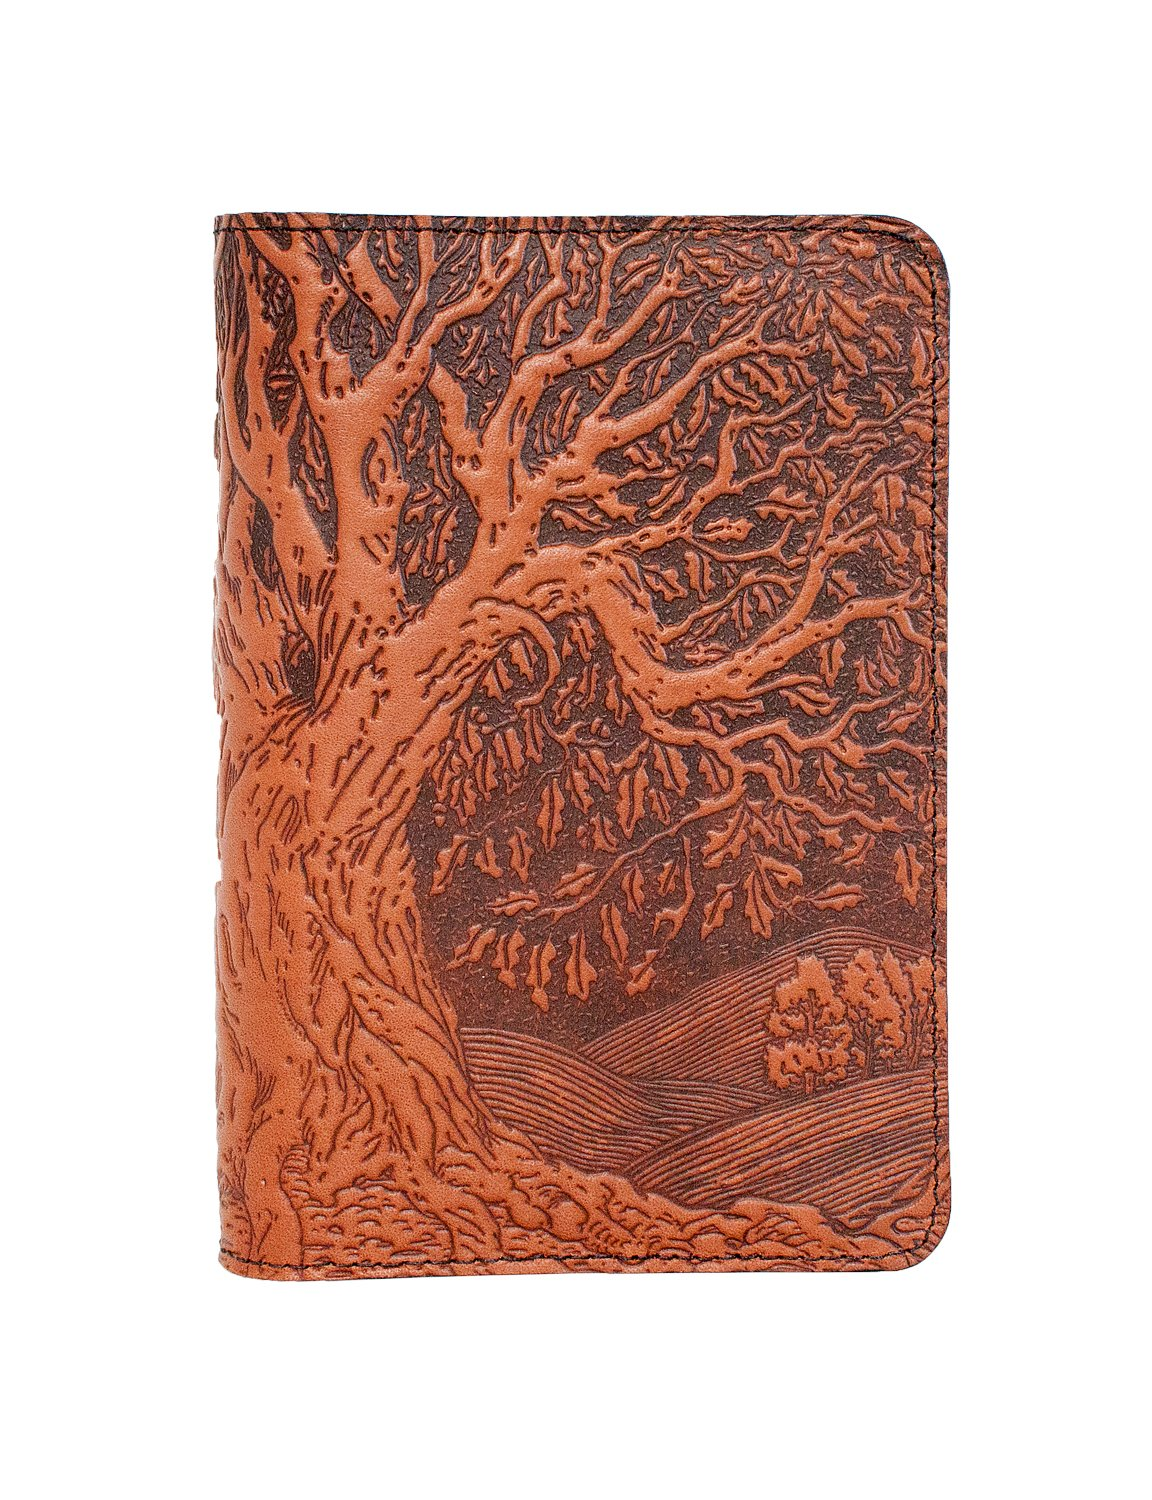 Oberon Design Tree of Life Pocket Notebook Cover - Fits Many 5.5 x 3.5 Inch Notebooks, Embossed Genuine Leather, Saddle Color - Made in The USA